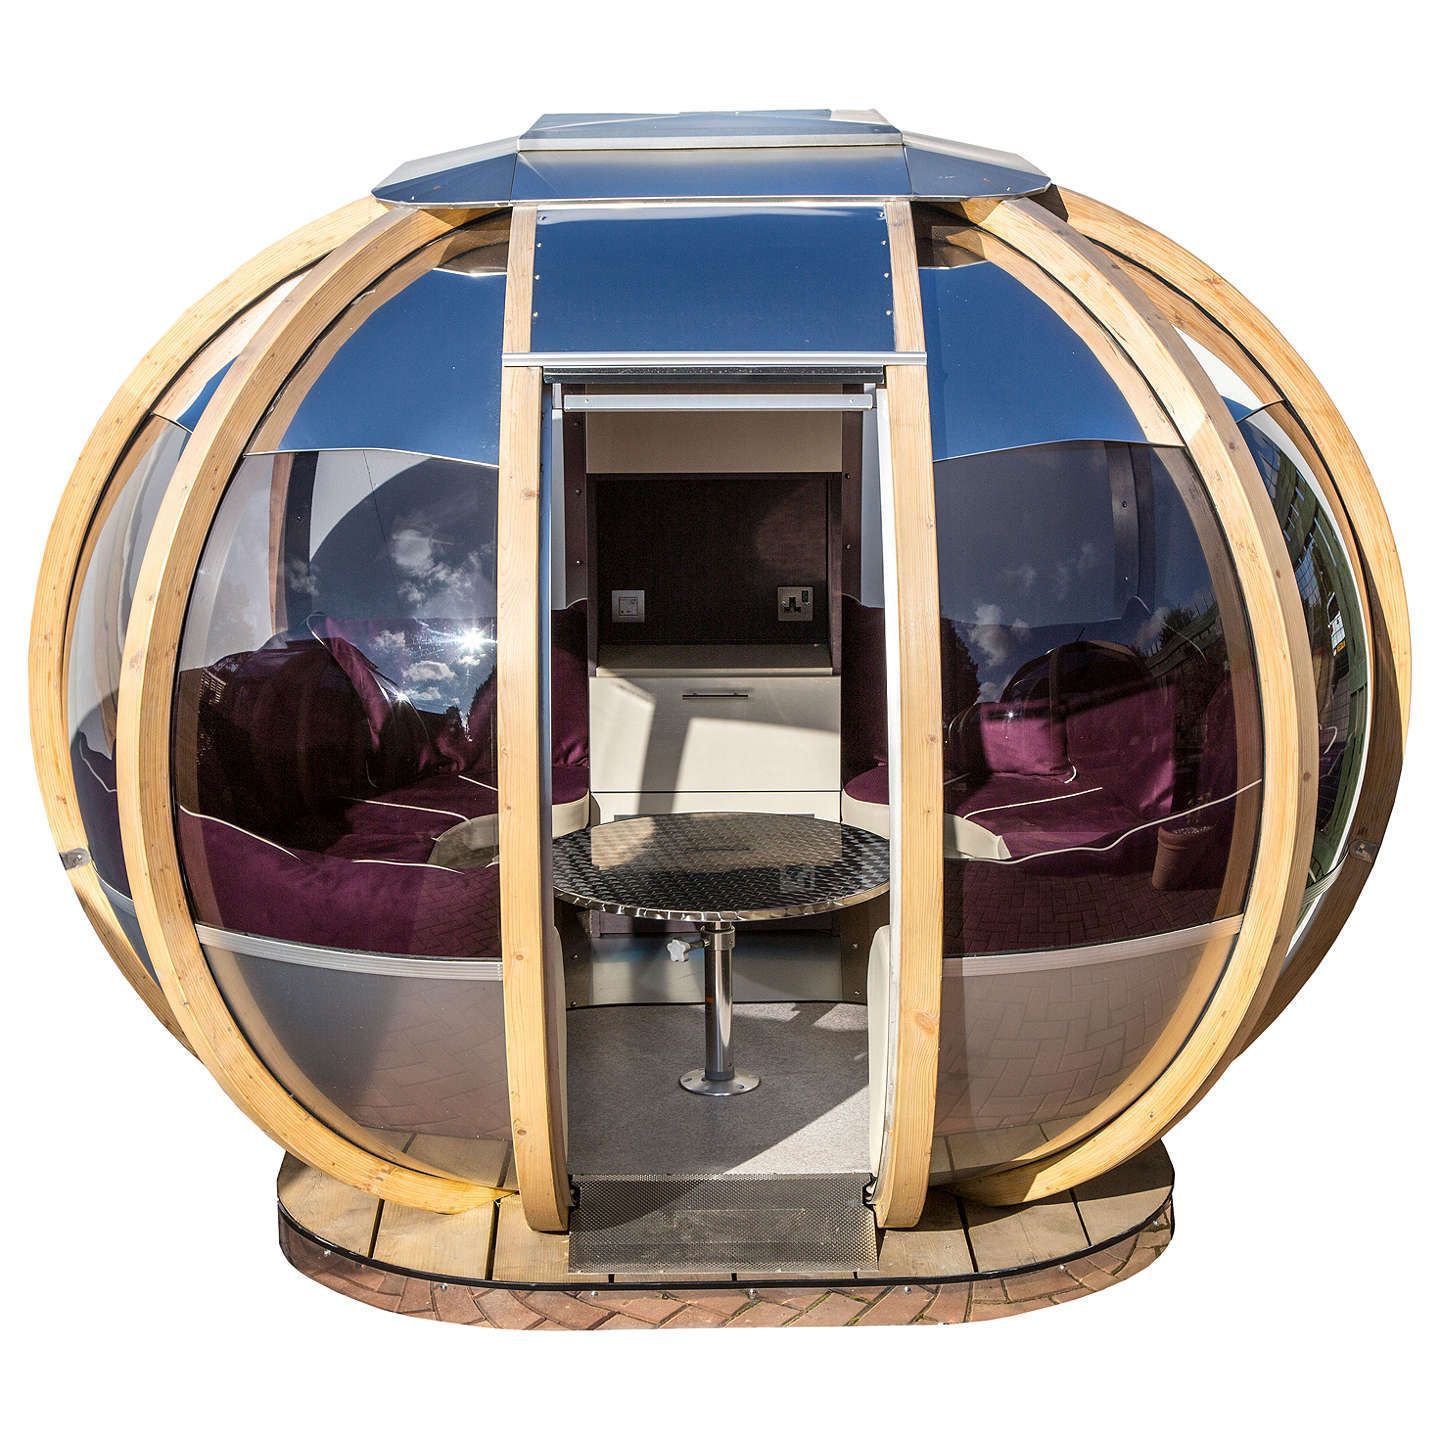 ef5cc1a6b8ab Farmer's Cottage Deluxe Rotating Summer House Garden Pod in 2019 ...